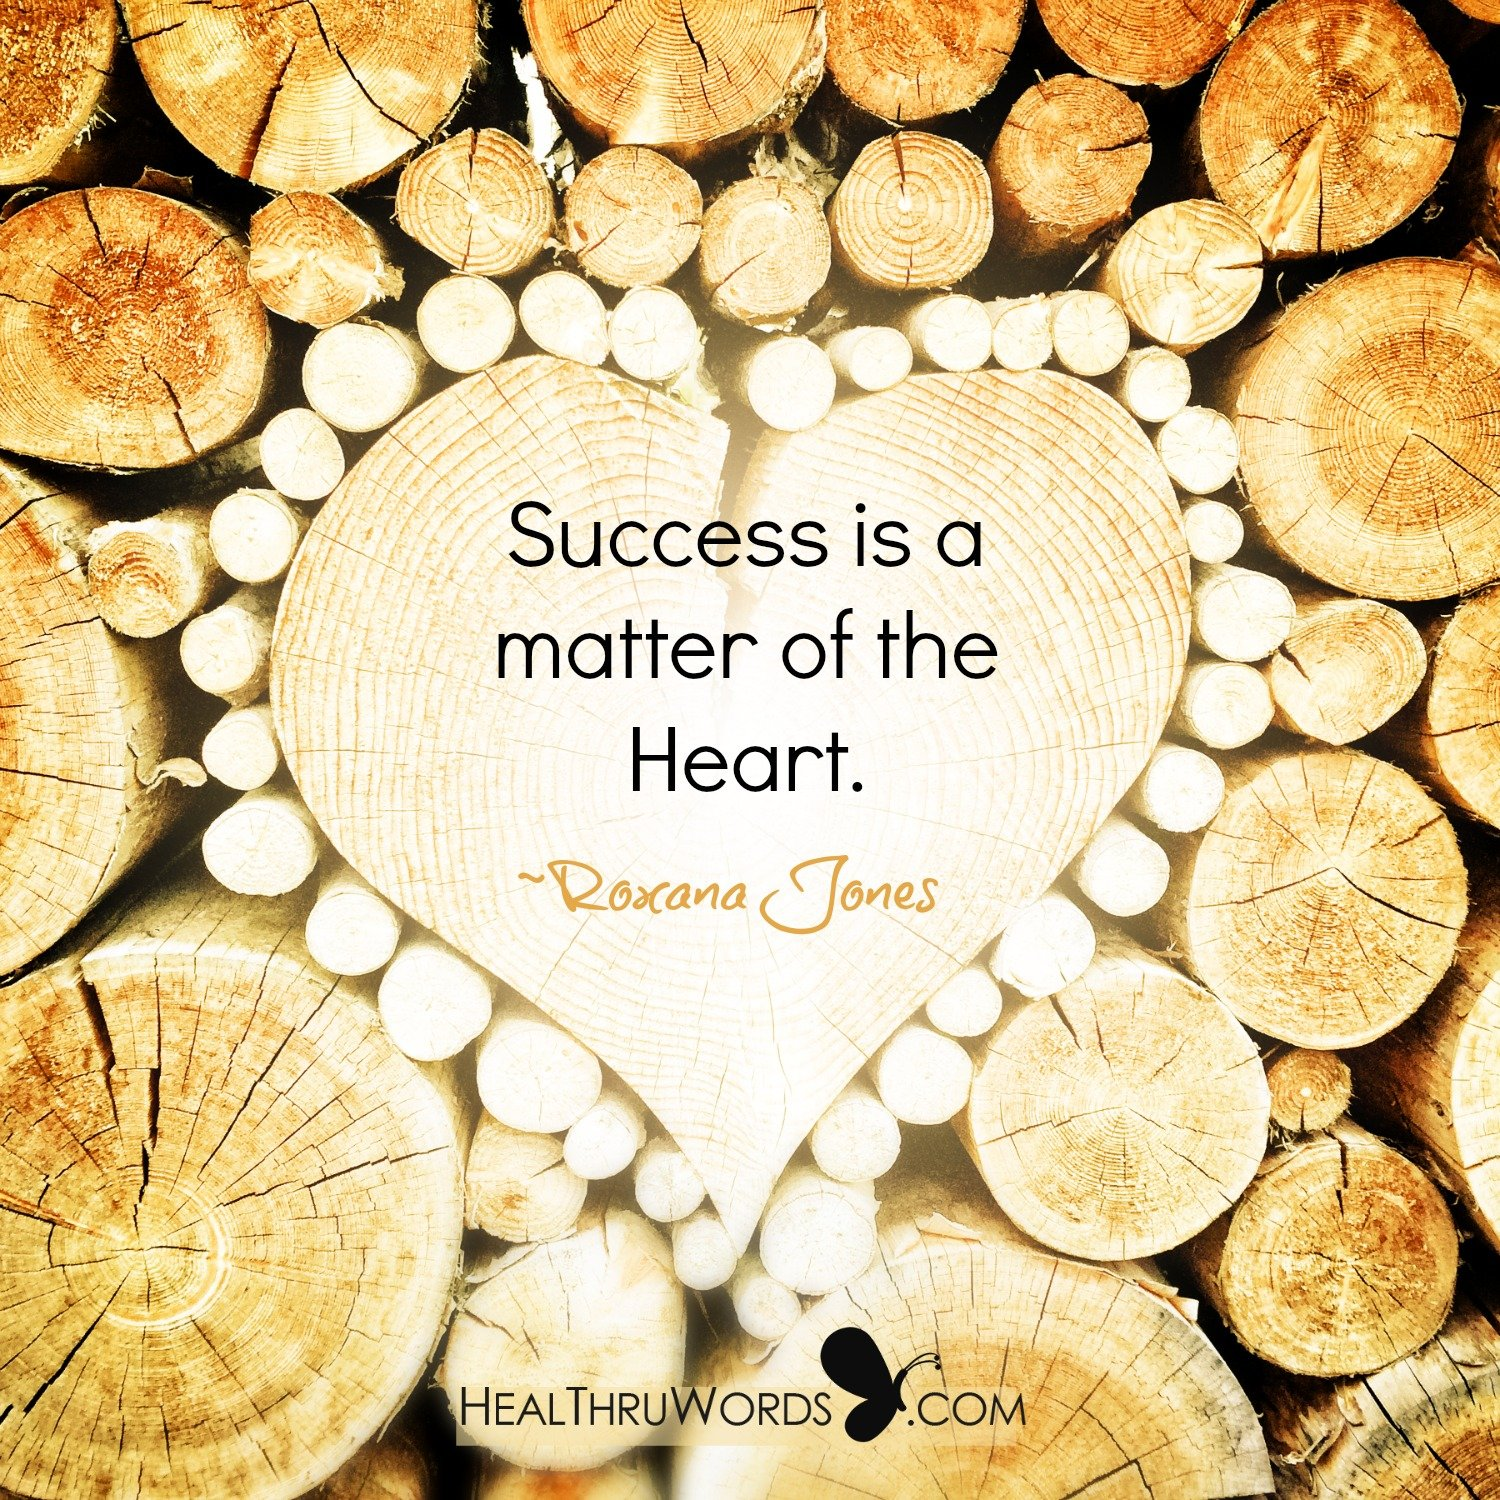 Inspirational Image: Heartfelt Success